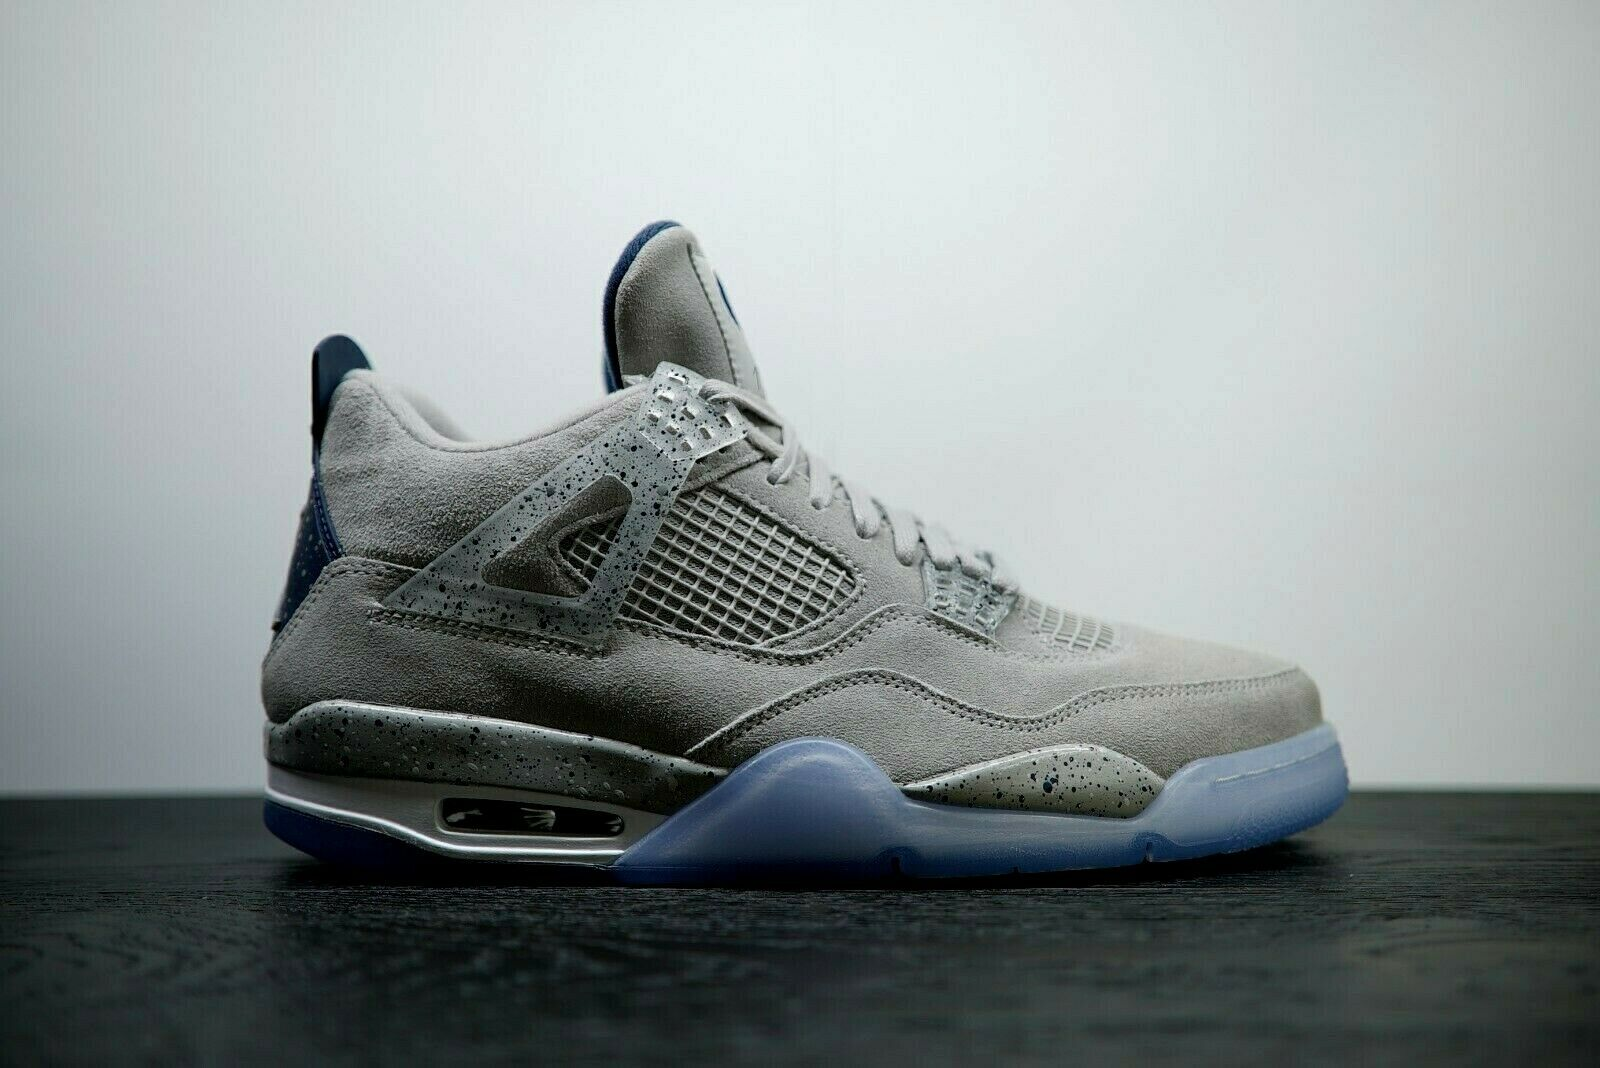 DS Nike Air Jordan IV 4 Retro GEORGETOWN HOYAS PE SAMPLE 11